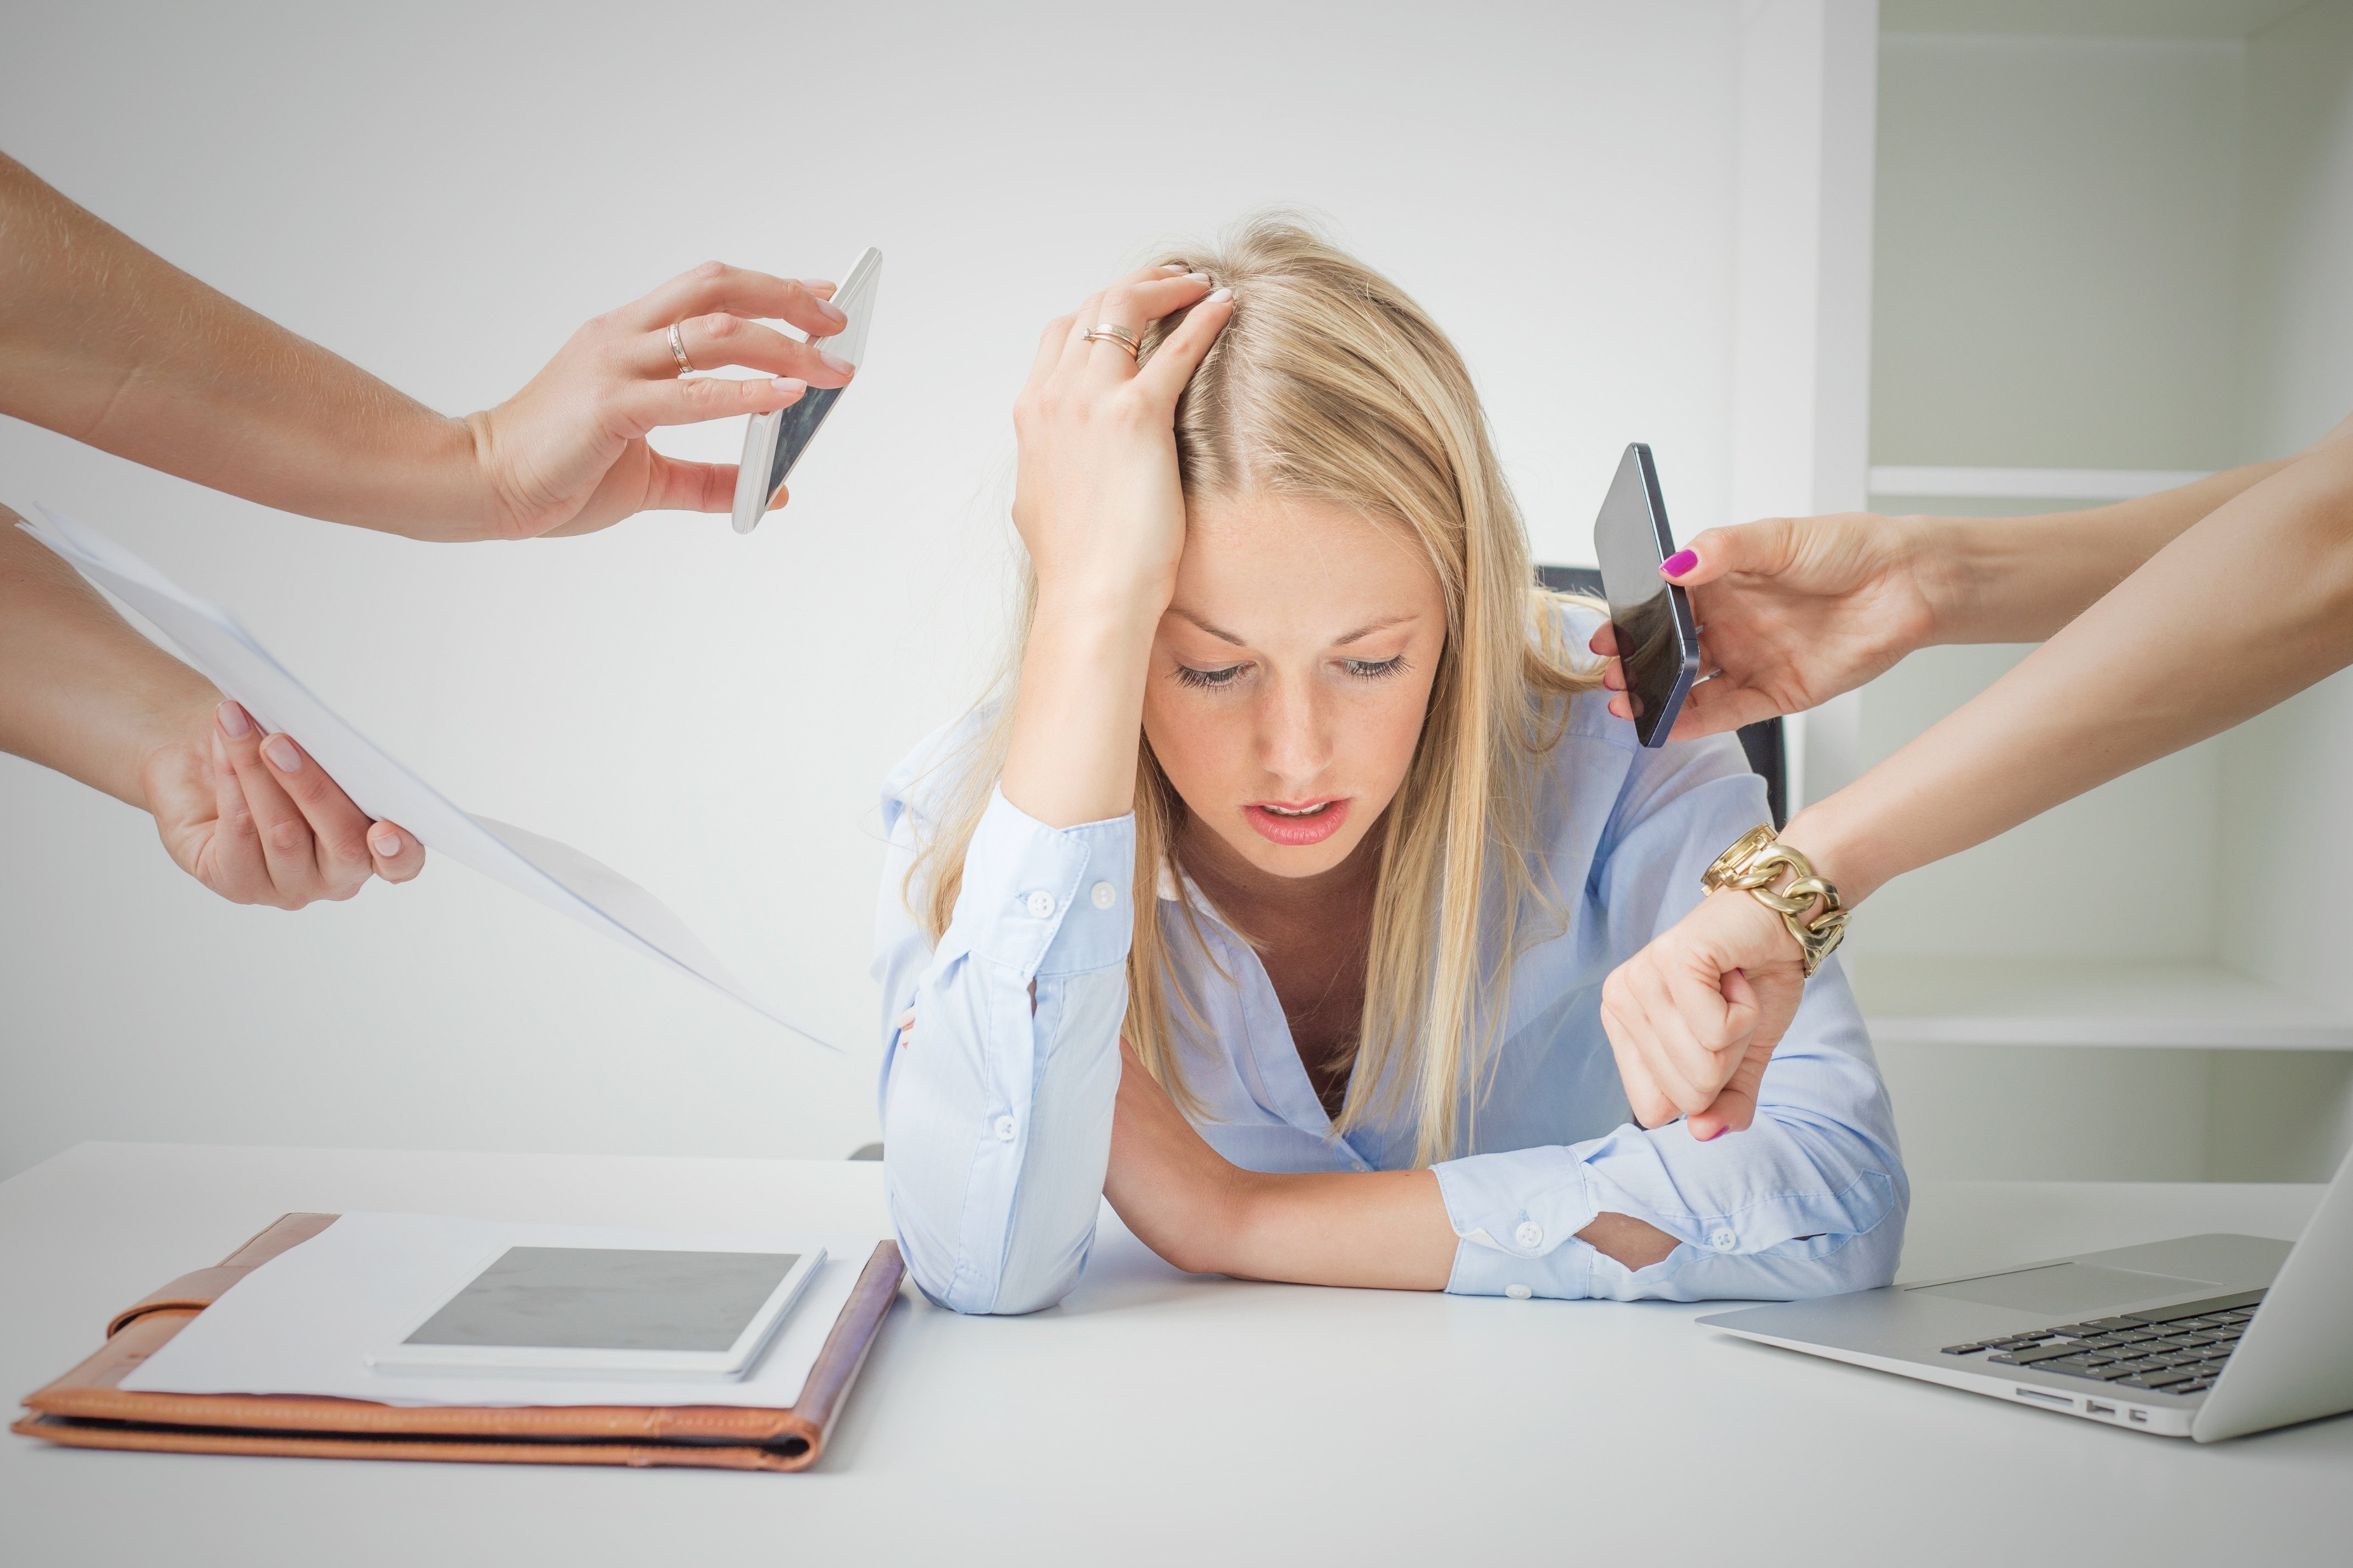 Graduates can't cope with office life